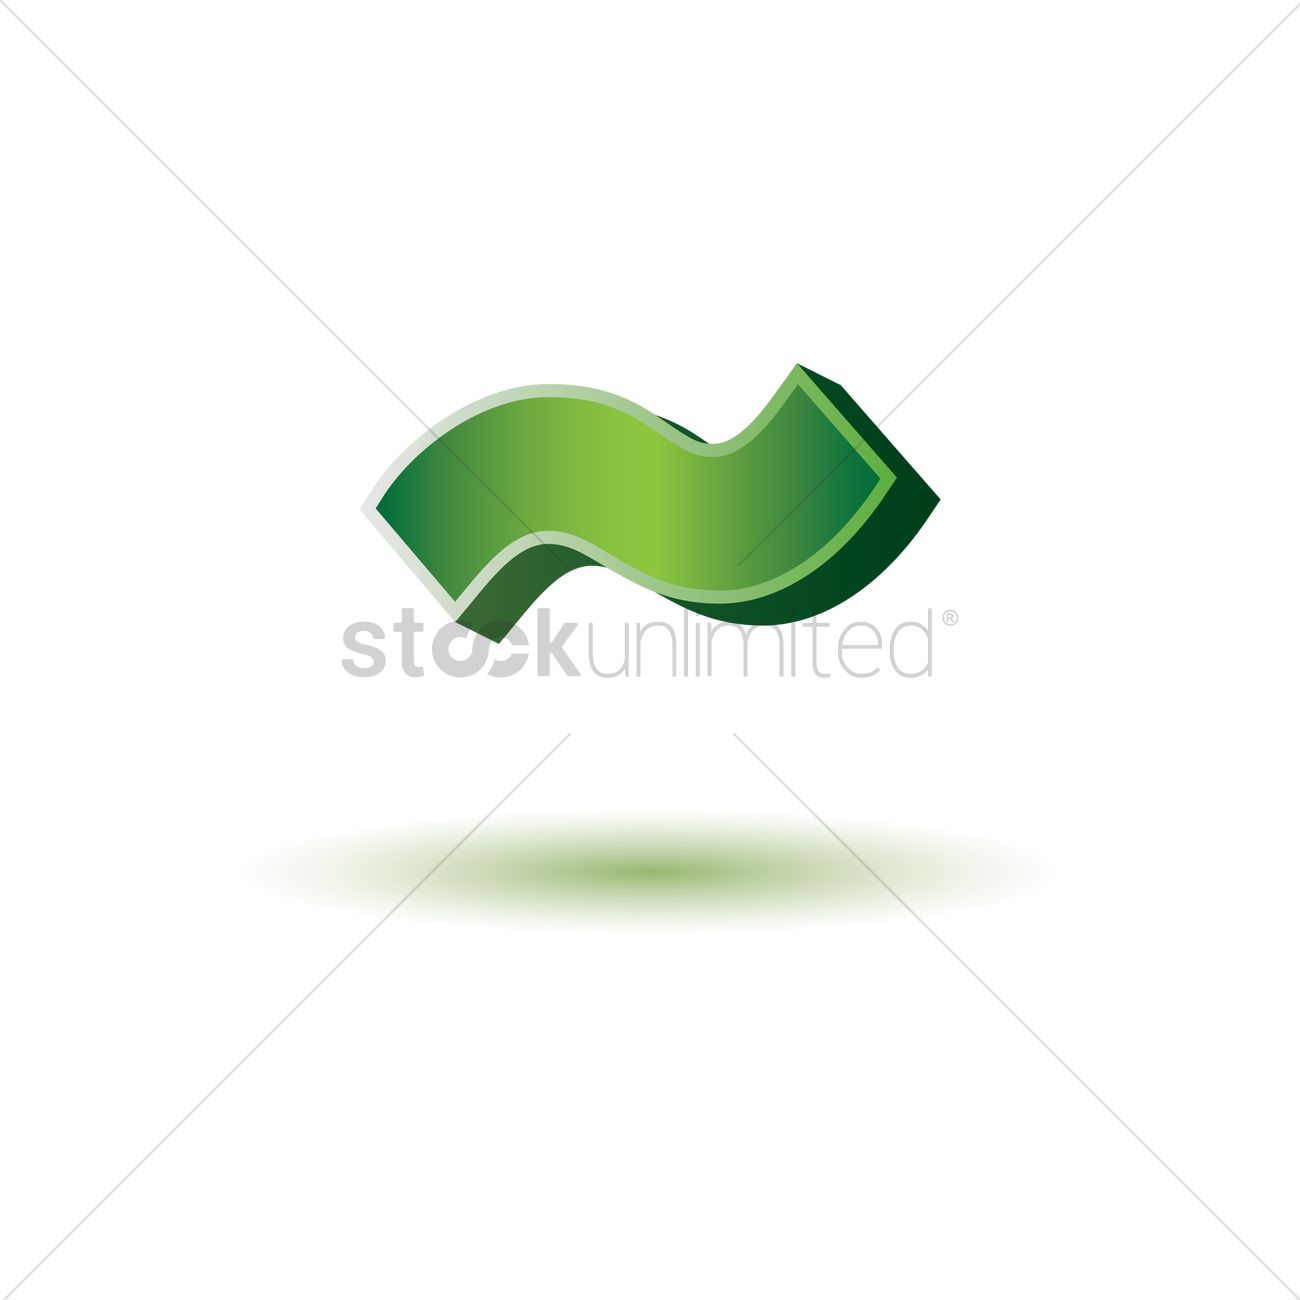 Tilde Symbol Vector Image 1870801 Stockunlimited